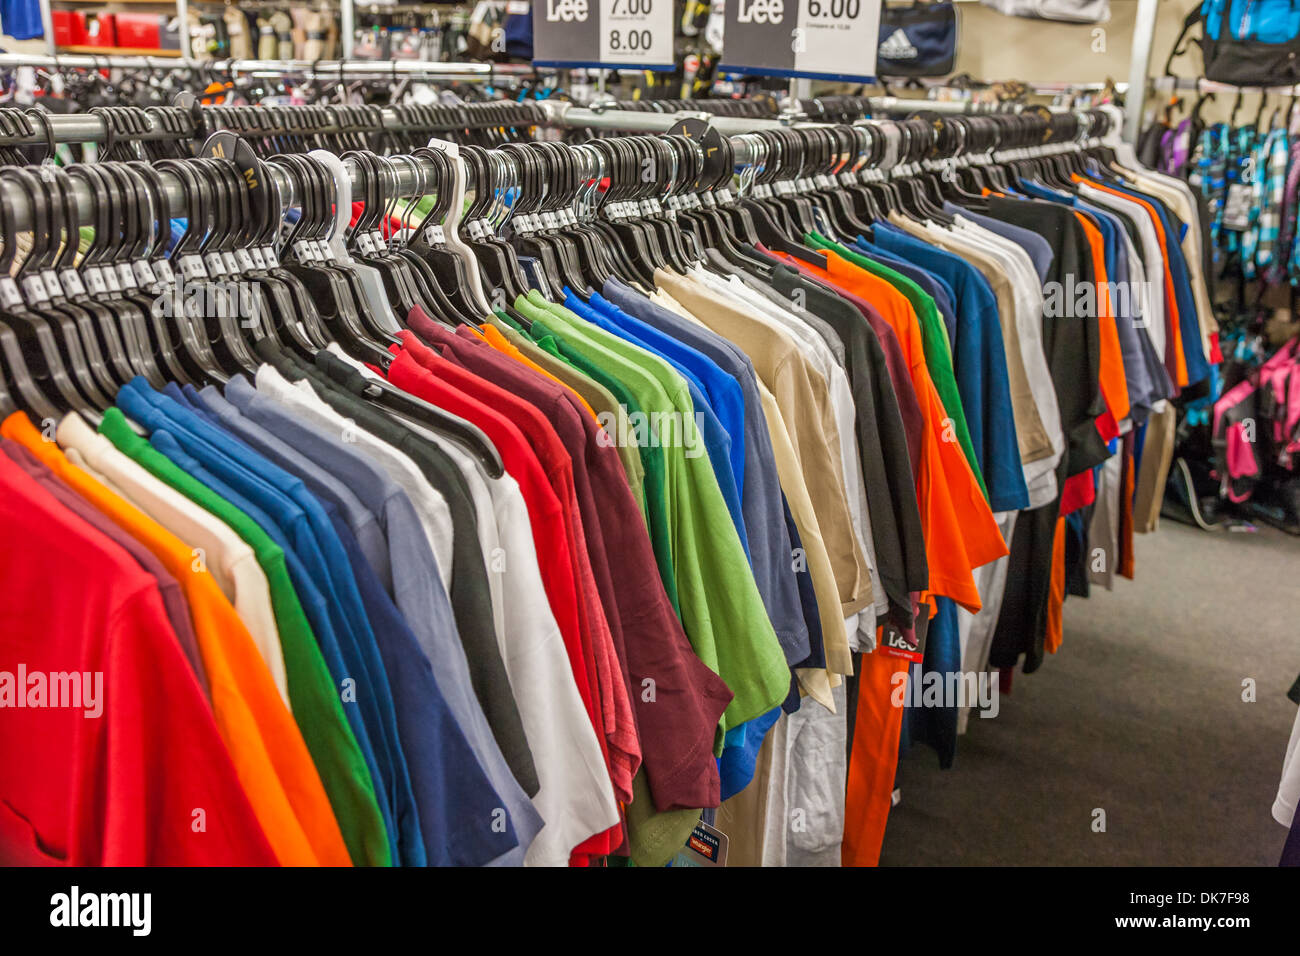 28e567bd0e84 T-shirts of all colors hanging on rack in retail discount clothing store